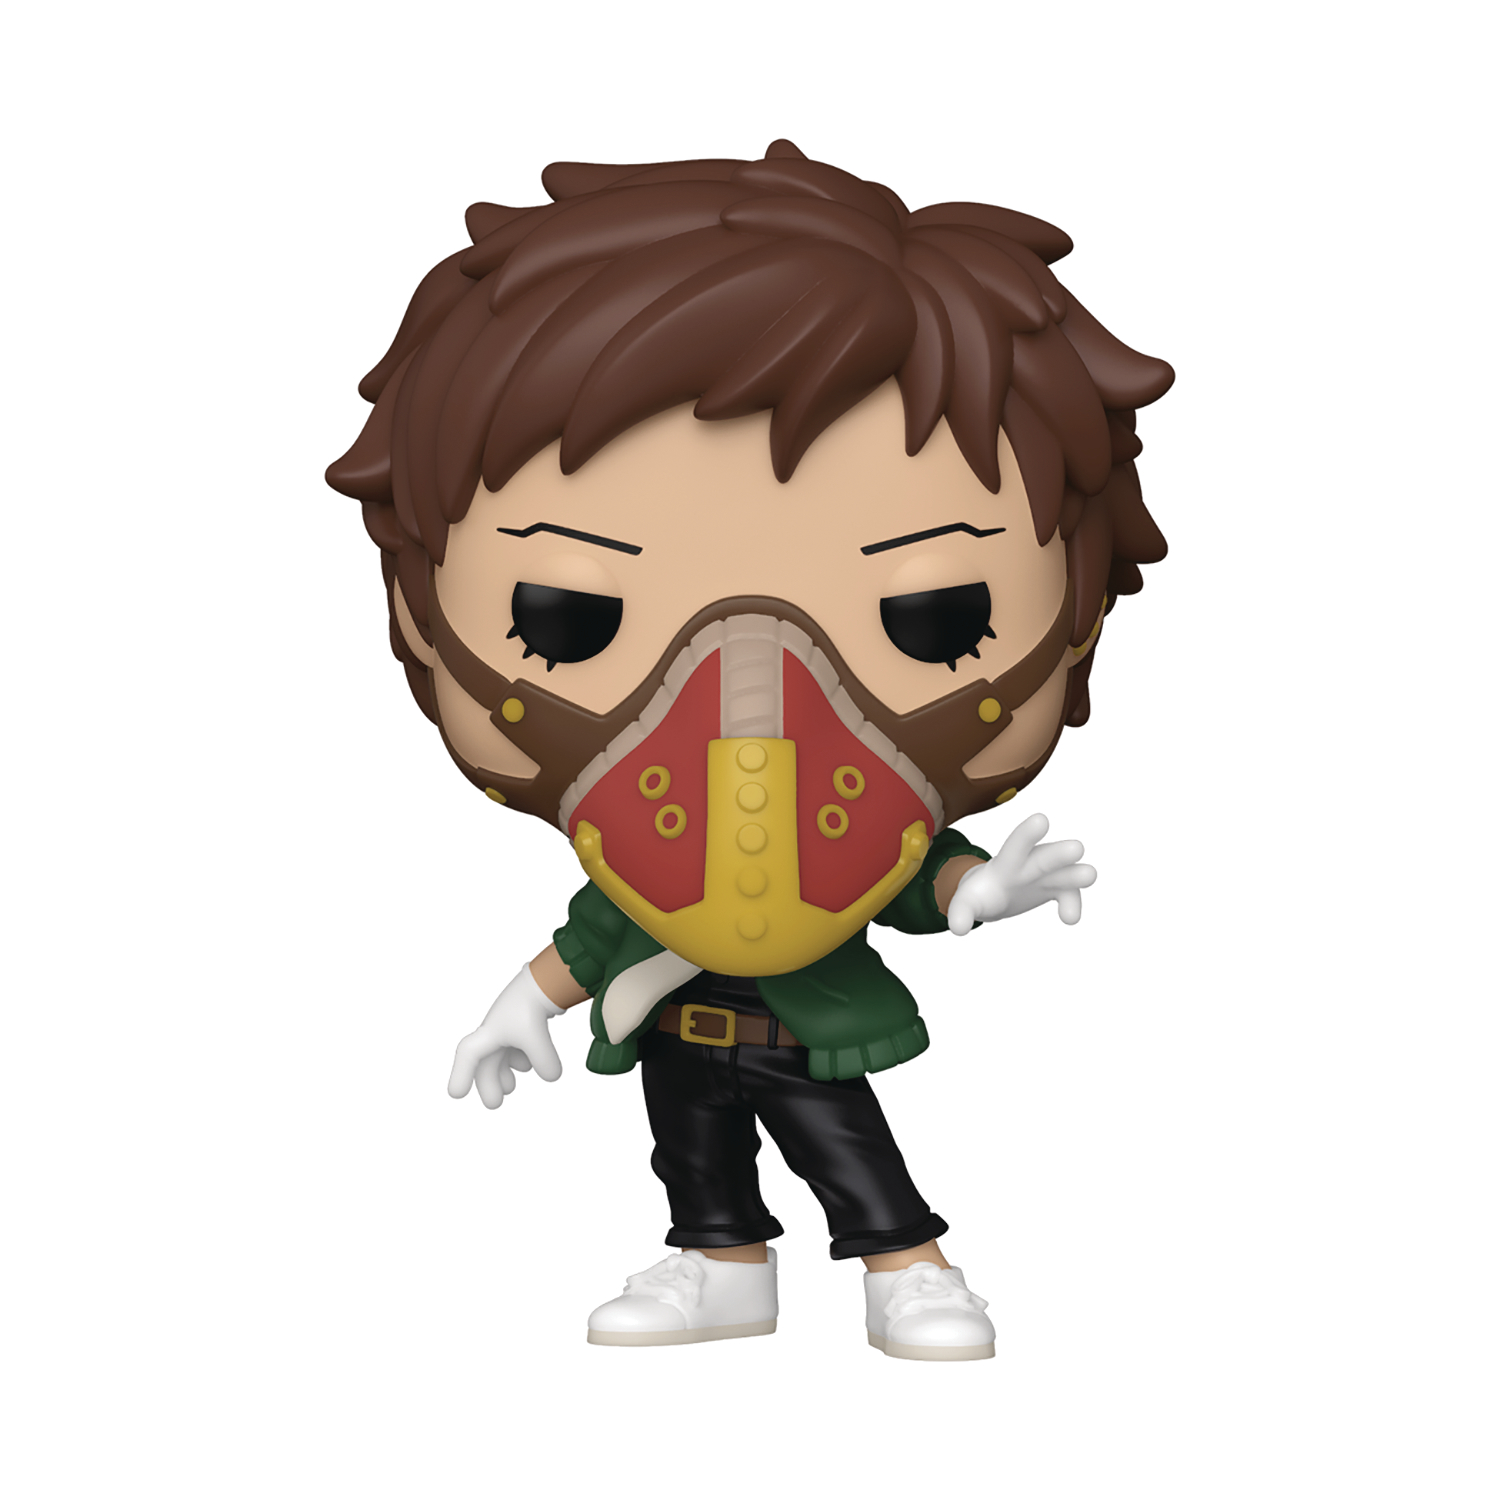 POP ANIMATION MHA KAI CHISAKI (OVERHAUL) VIN FIG